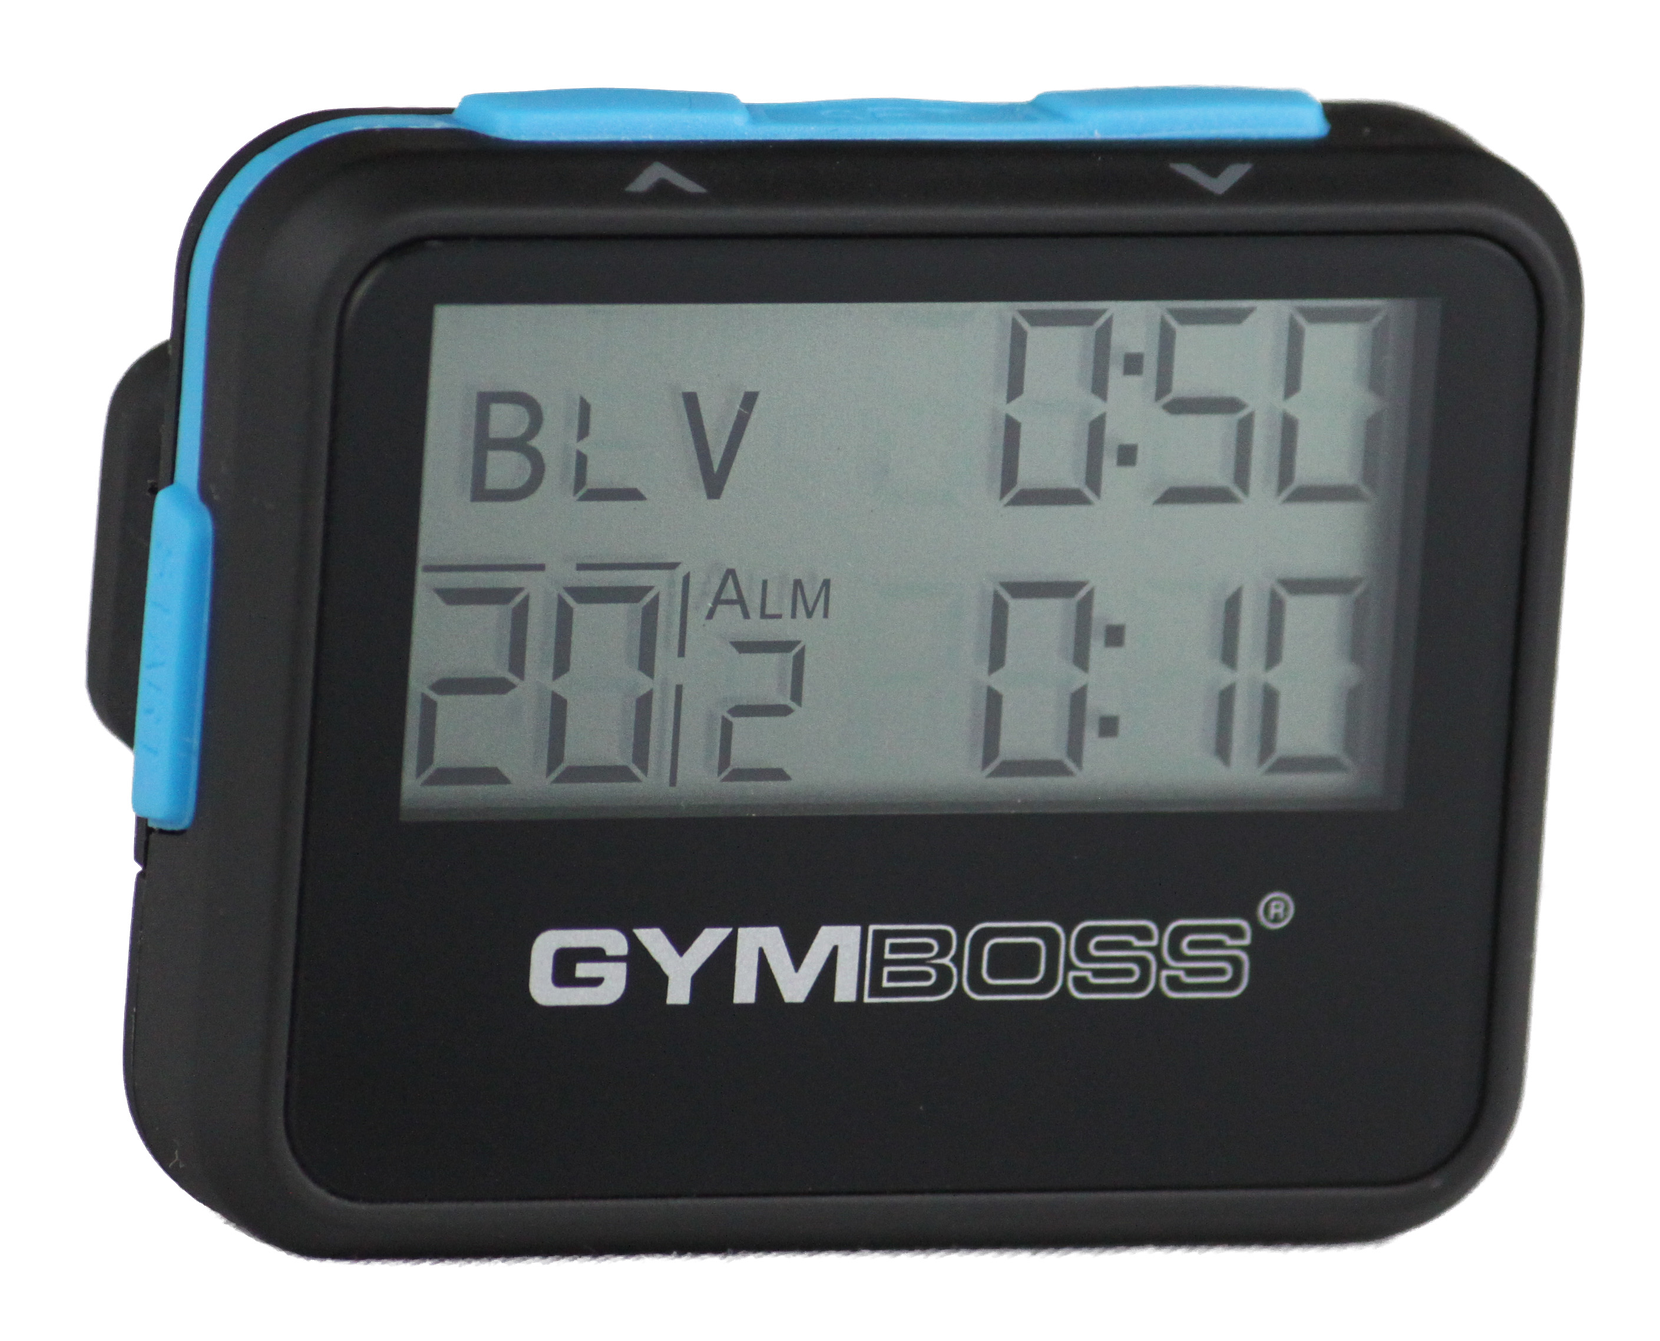 This Gymboss Classic interval timer can help your favorite giftee with (as the name implies) interval training, or to stay on track during a walk/run workout.